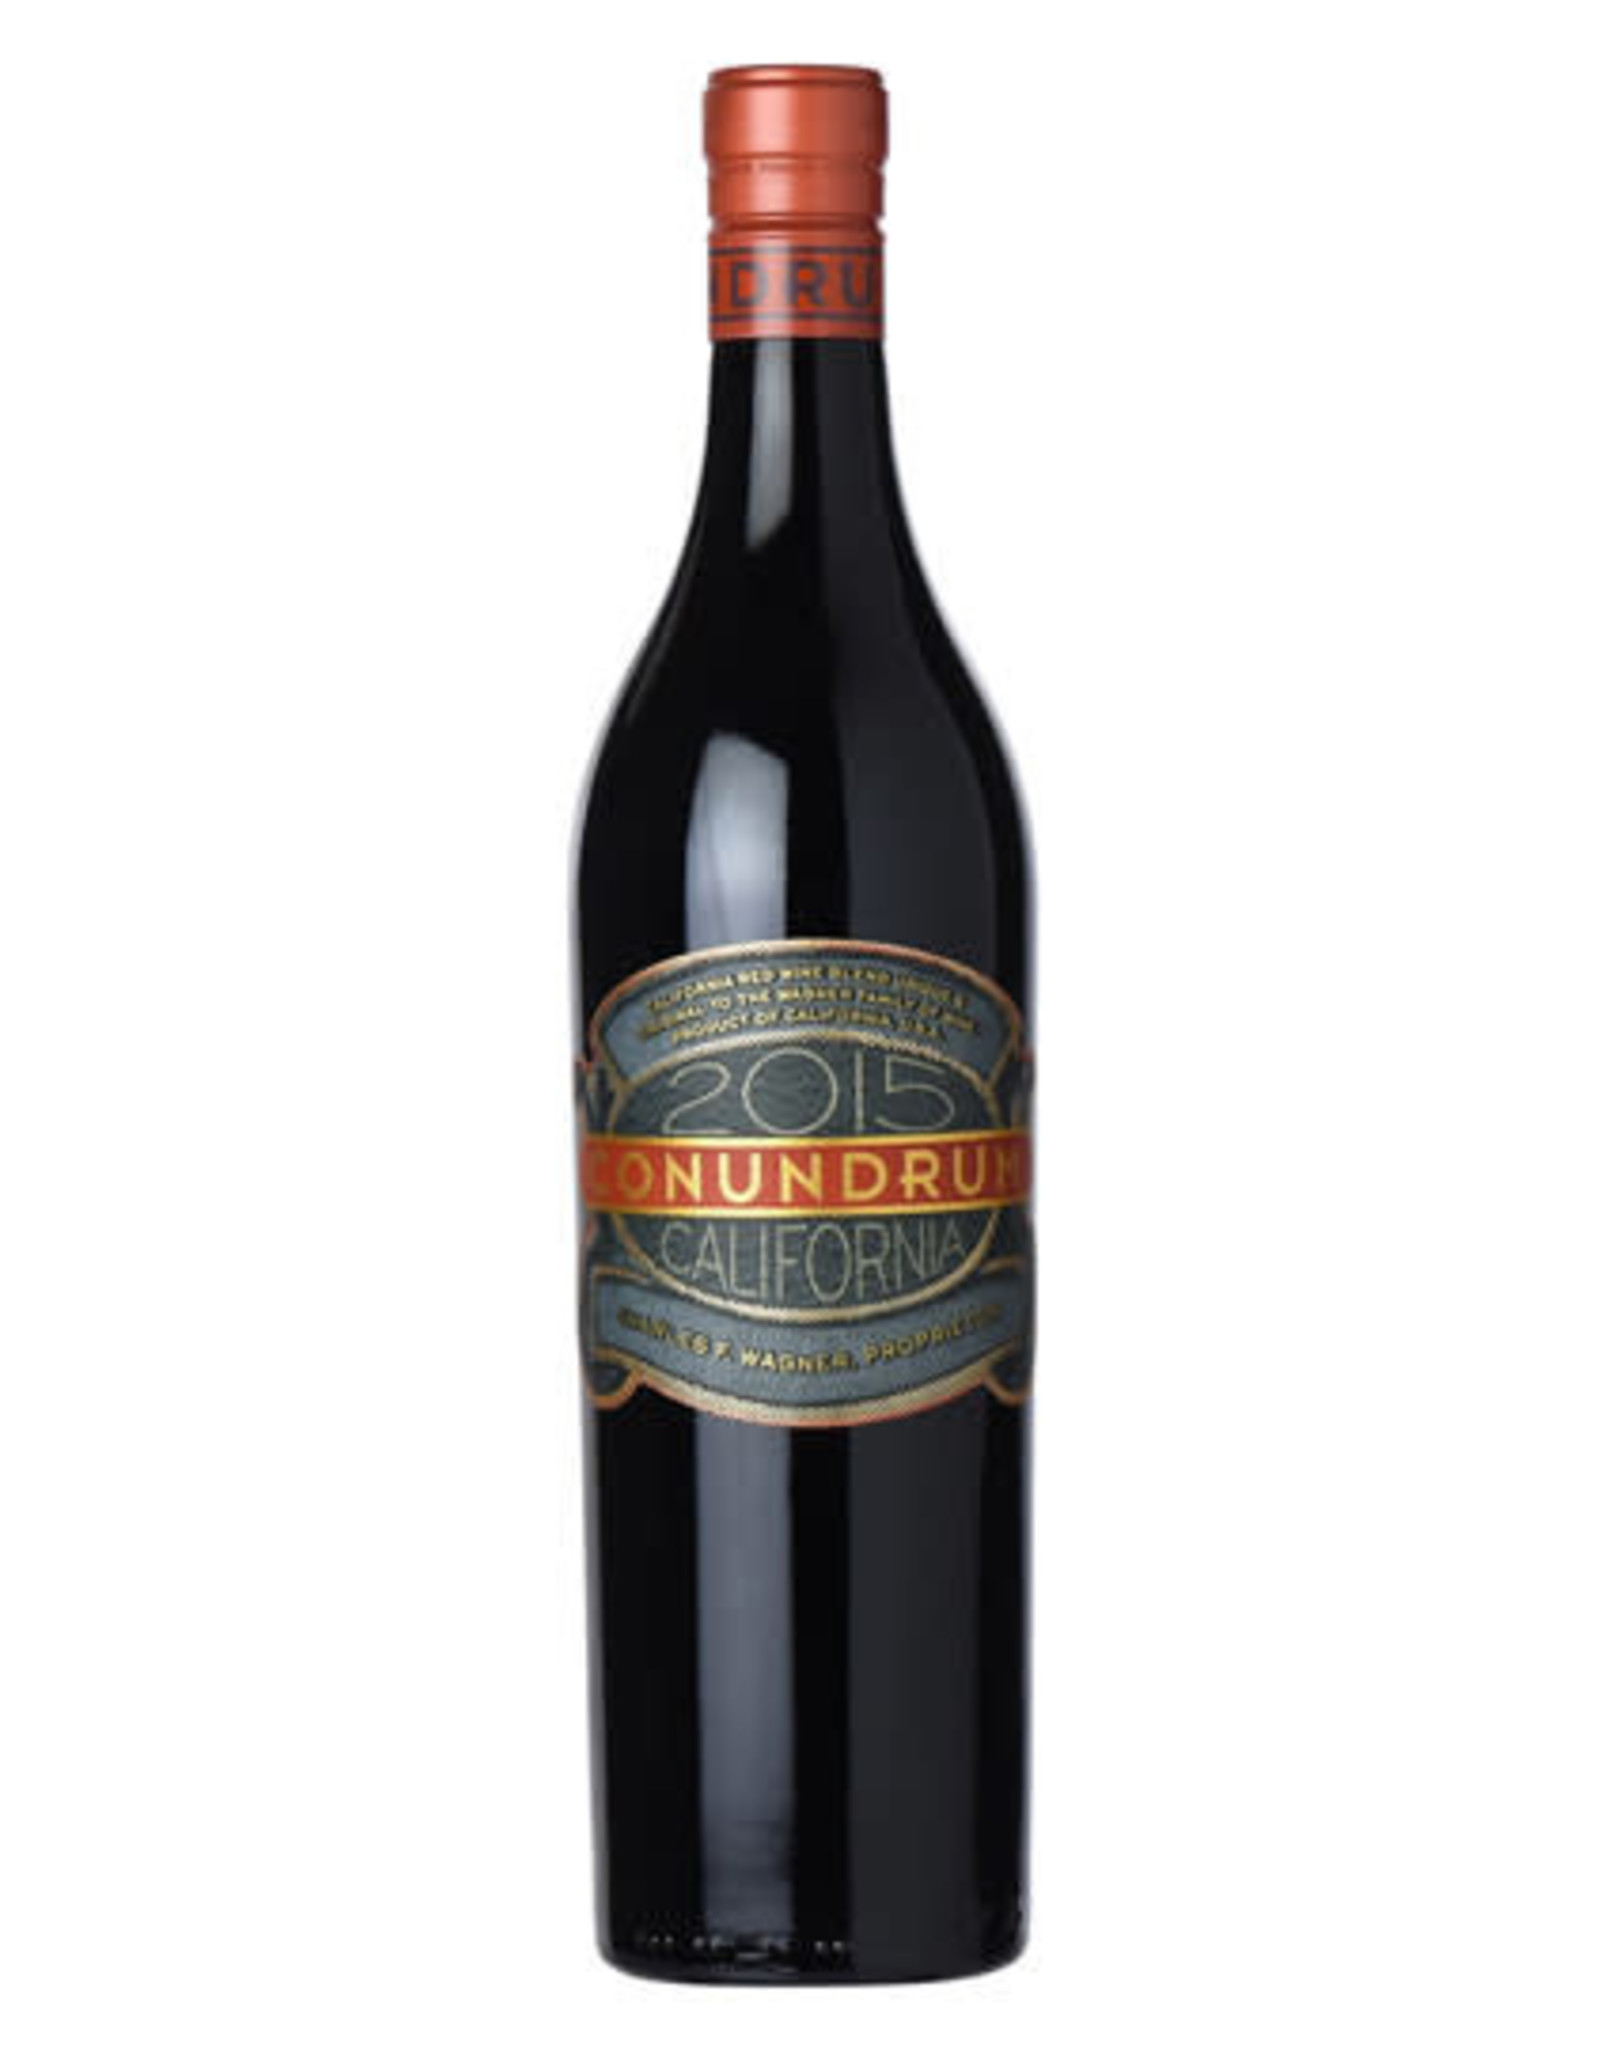 CONUNDRUM CALIFORNIA RED WINE 2015